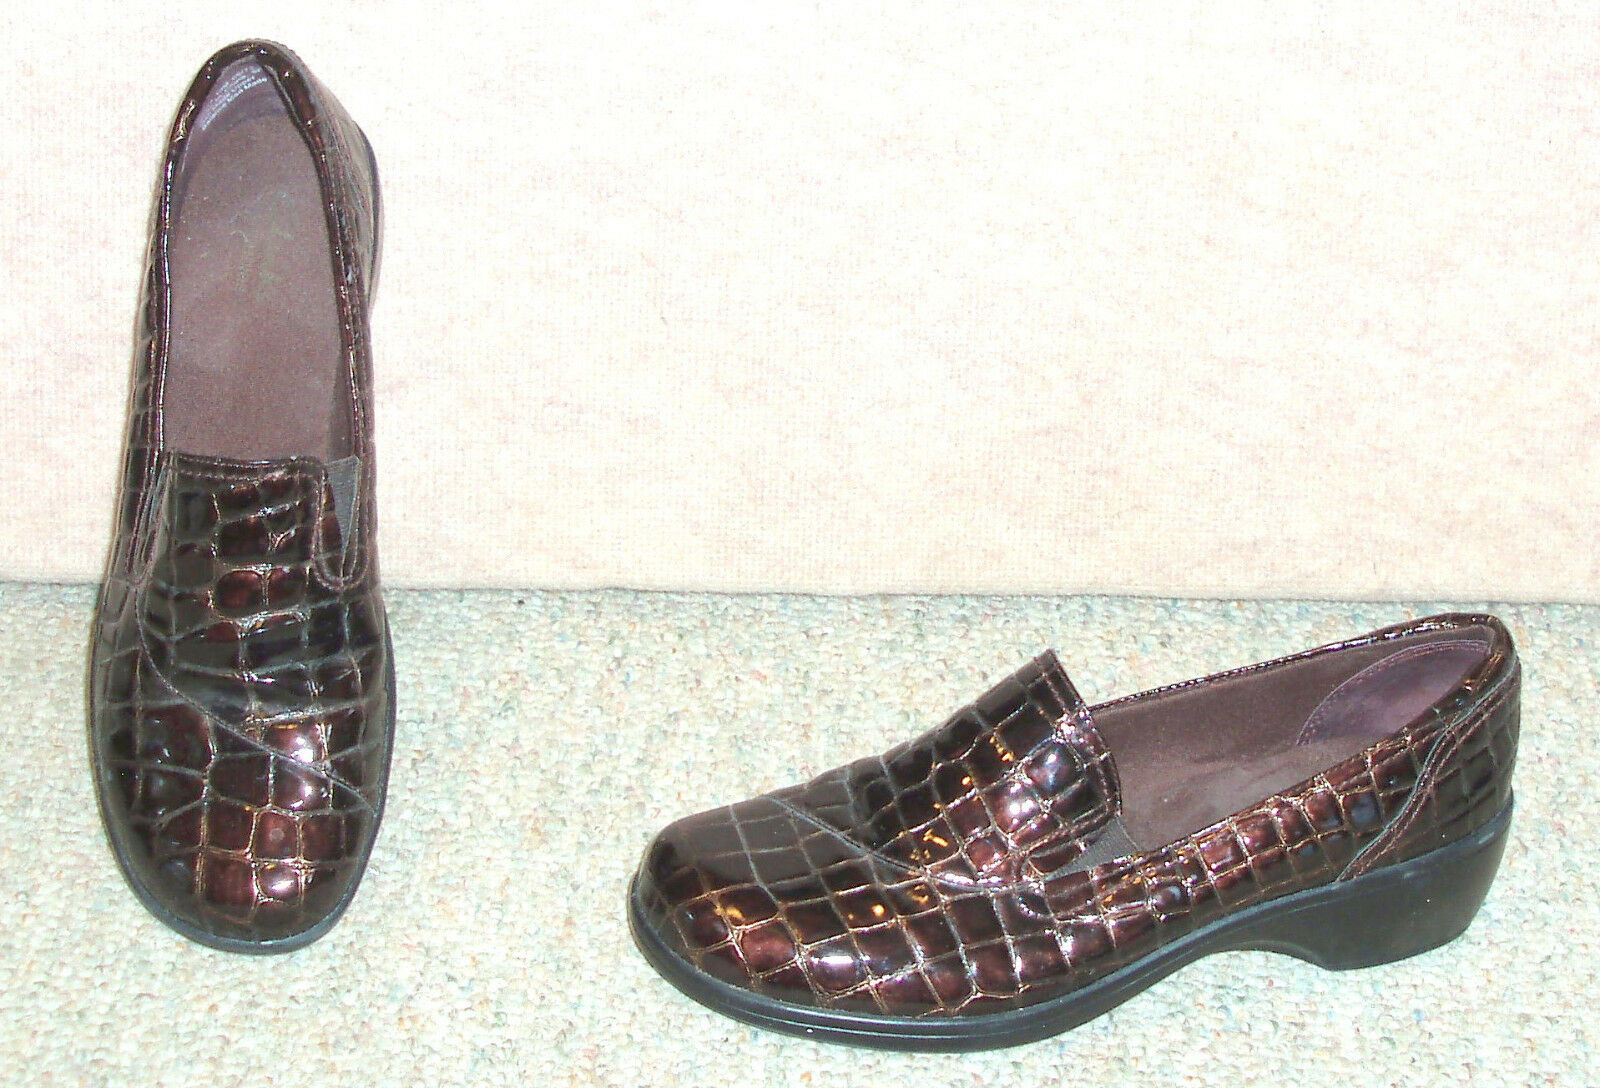 Women's brown CLARKS bendables slip on M shoes , sz 10 M on 28a092